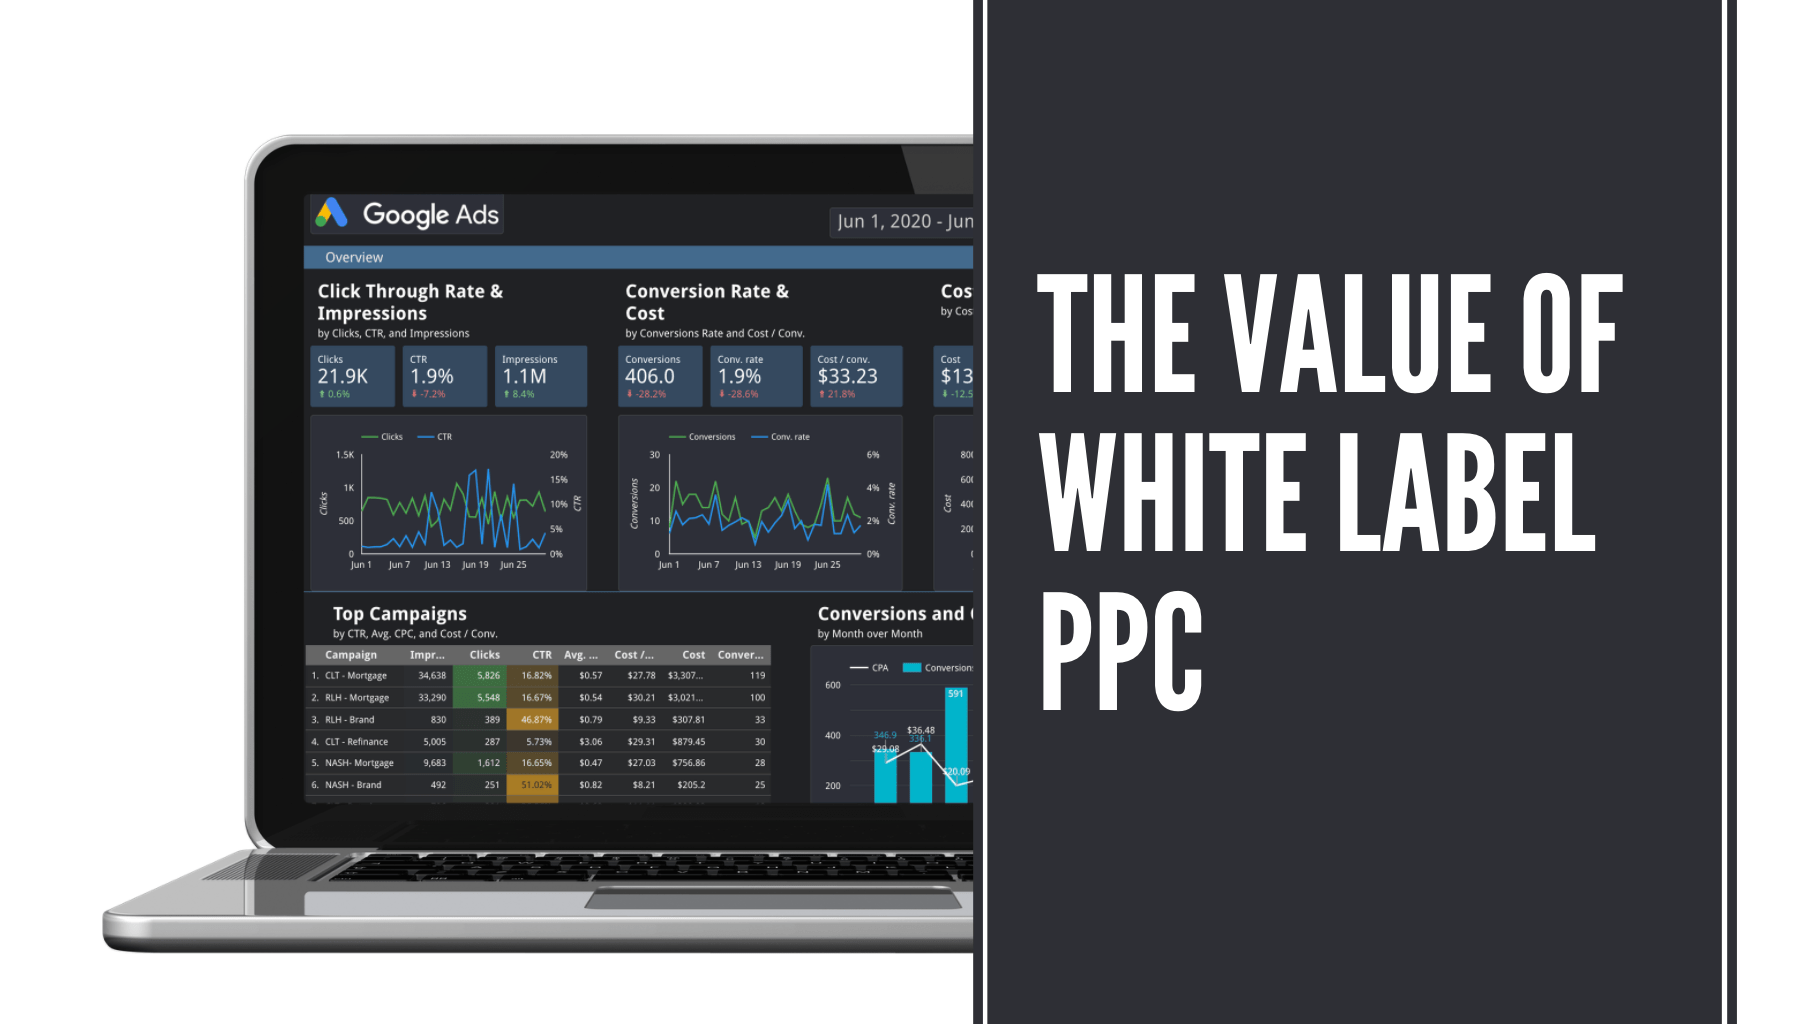 The Value of White Label PPC